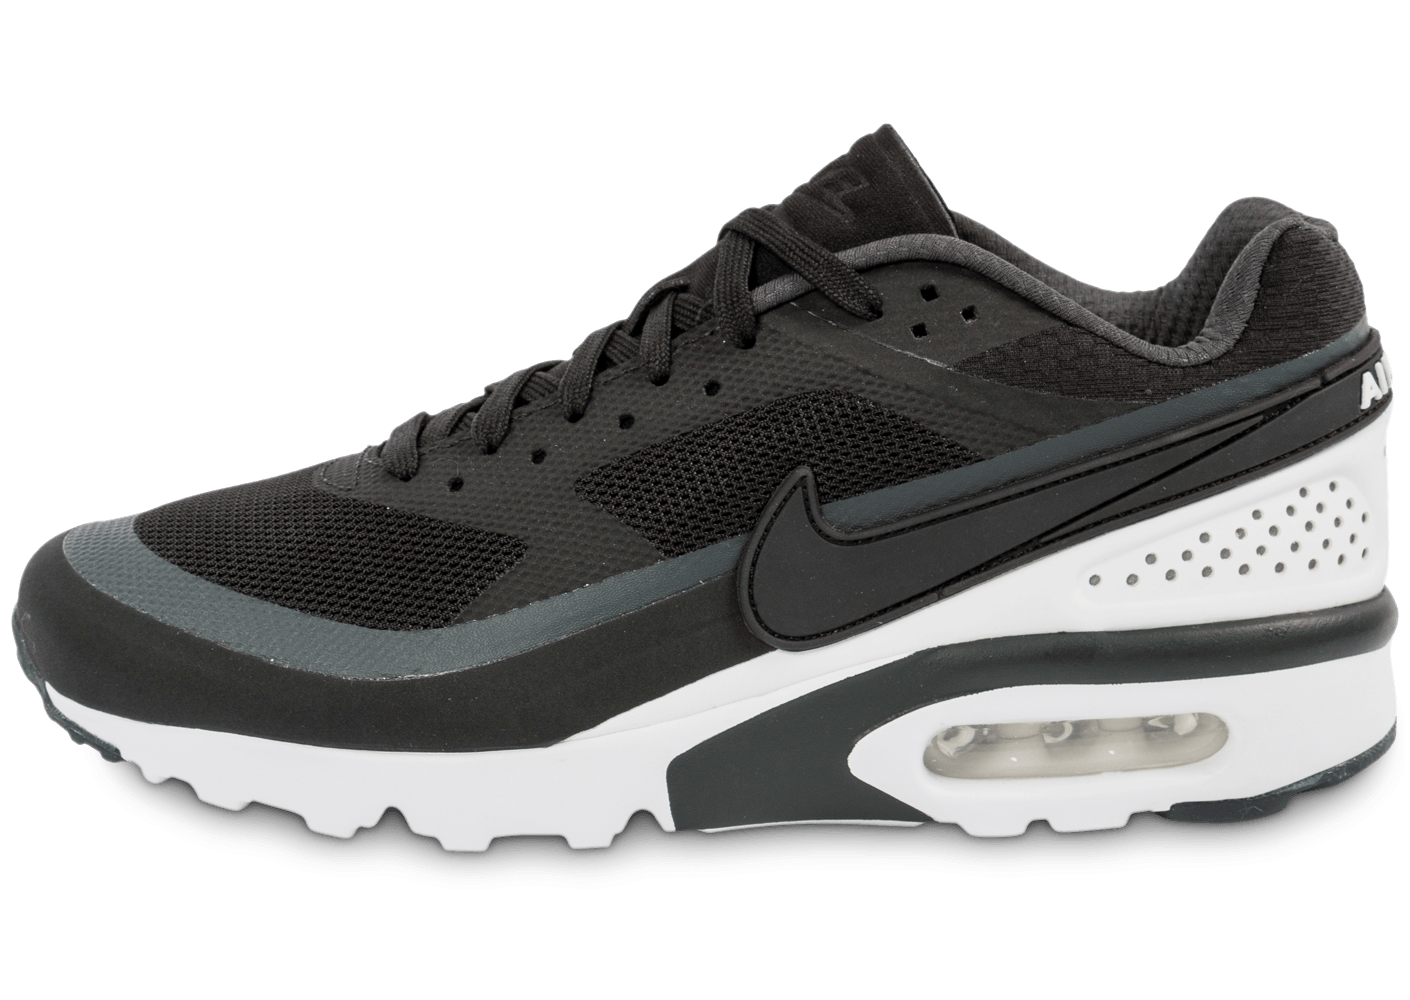 nike air max bw ultra noire et blanche chaussures homme. Black Bedroom Furniture Sets. Home Design Ideas